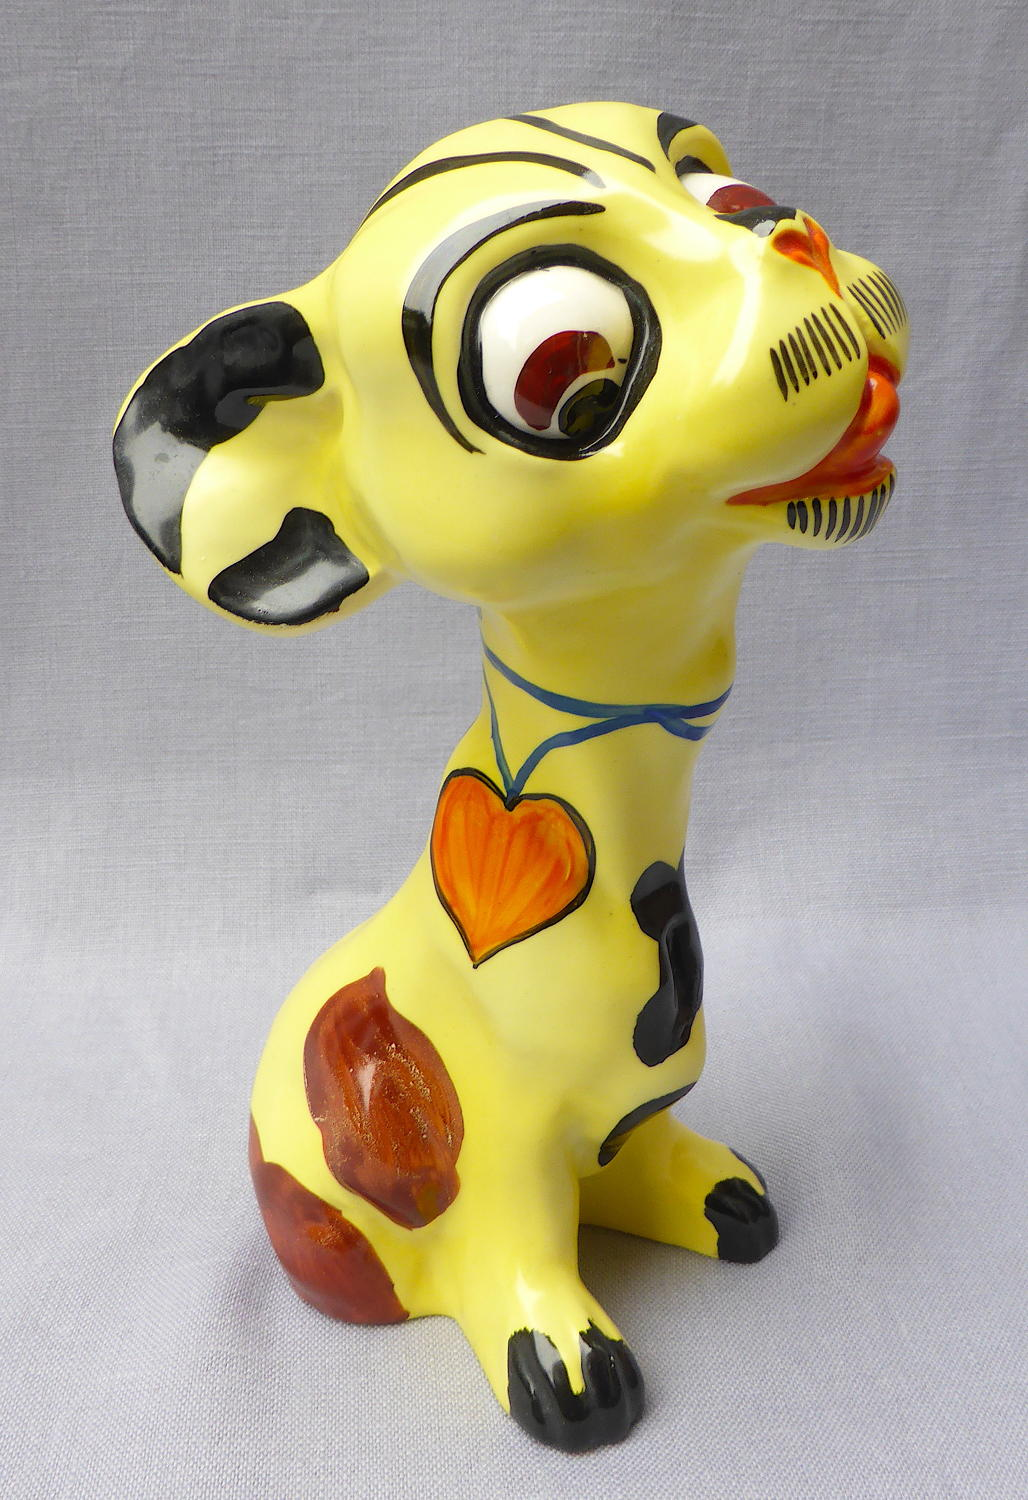 Rare 1930s Art Deco Ditmar Urbach dog figure